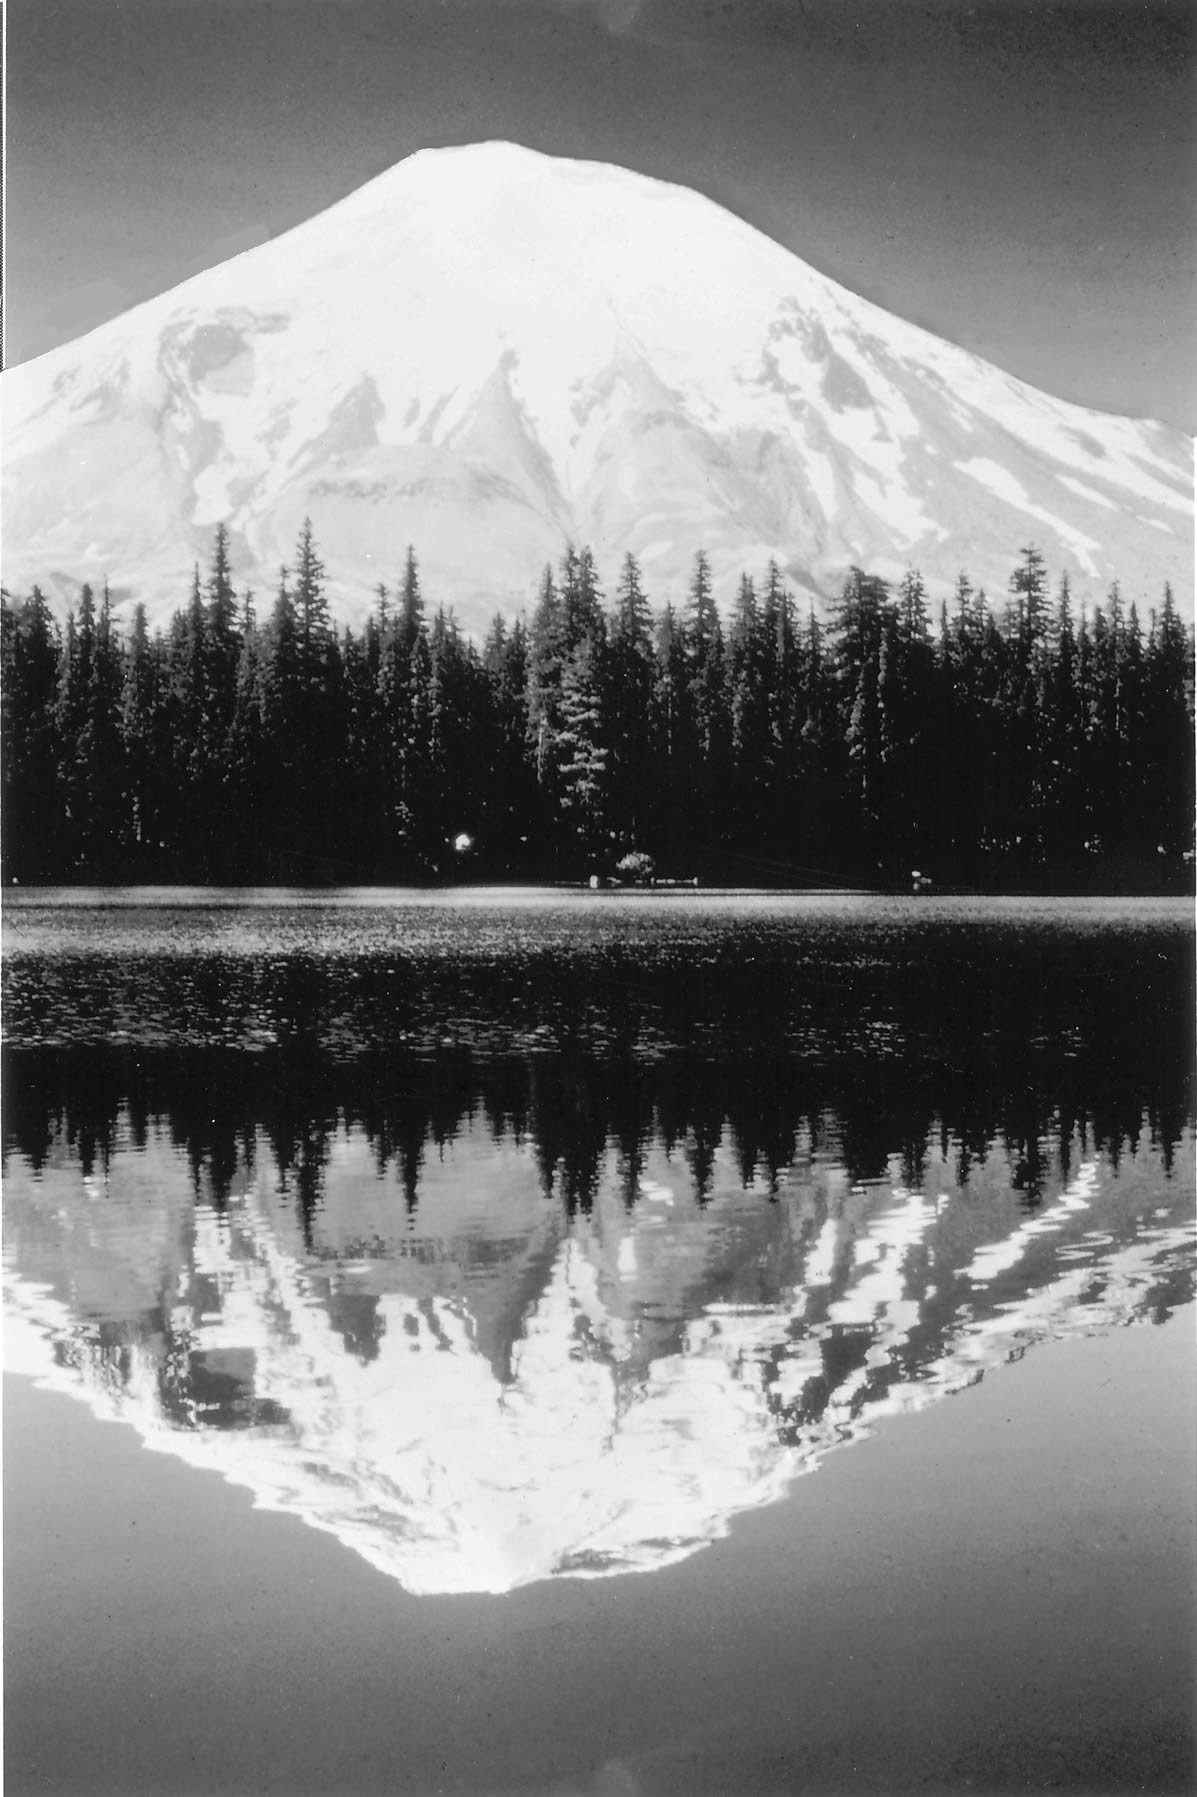 Photograph of Mt. St. Helens and Spirit Lake